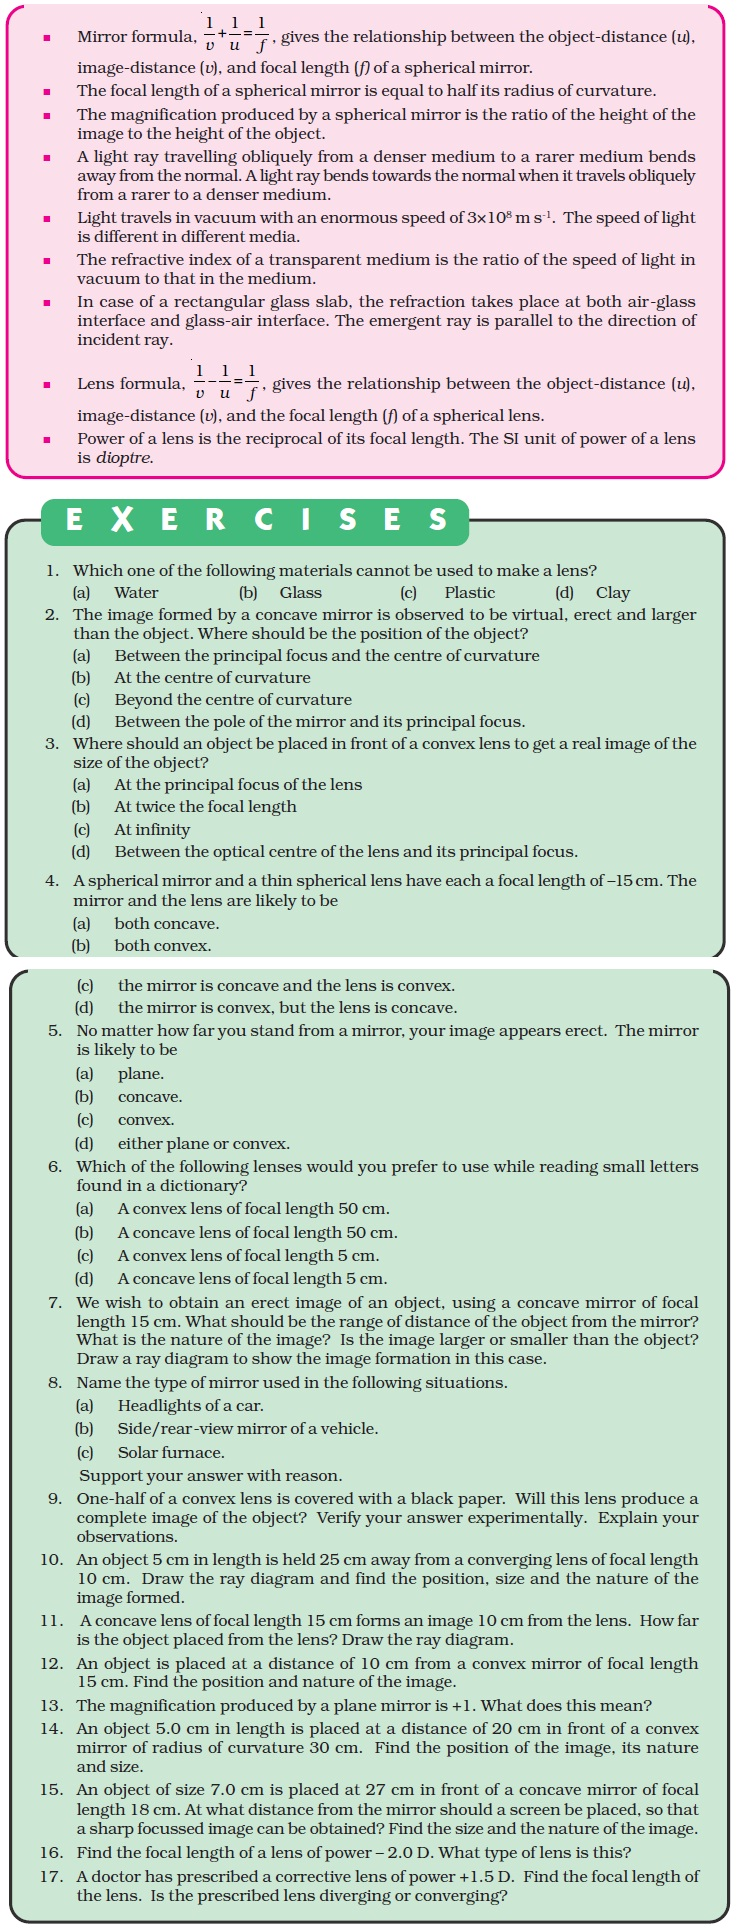 NCERT Class X Science Chapter 10 - Light, Reflection and Refraction